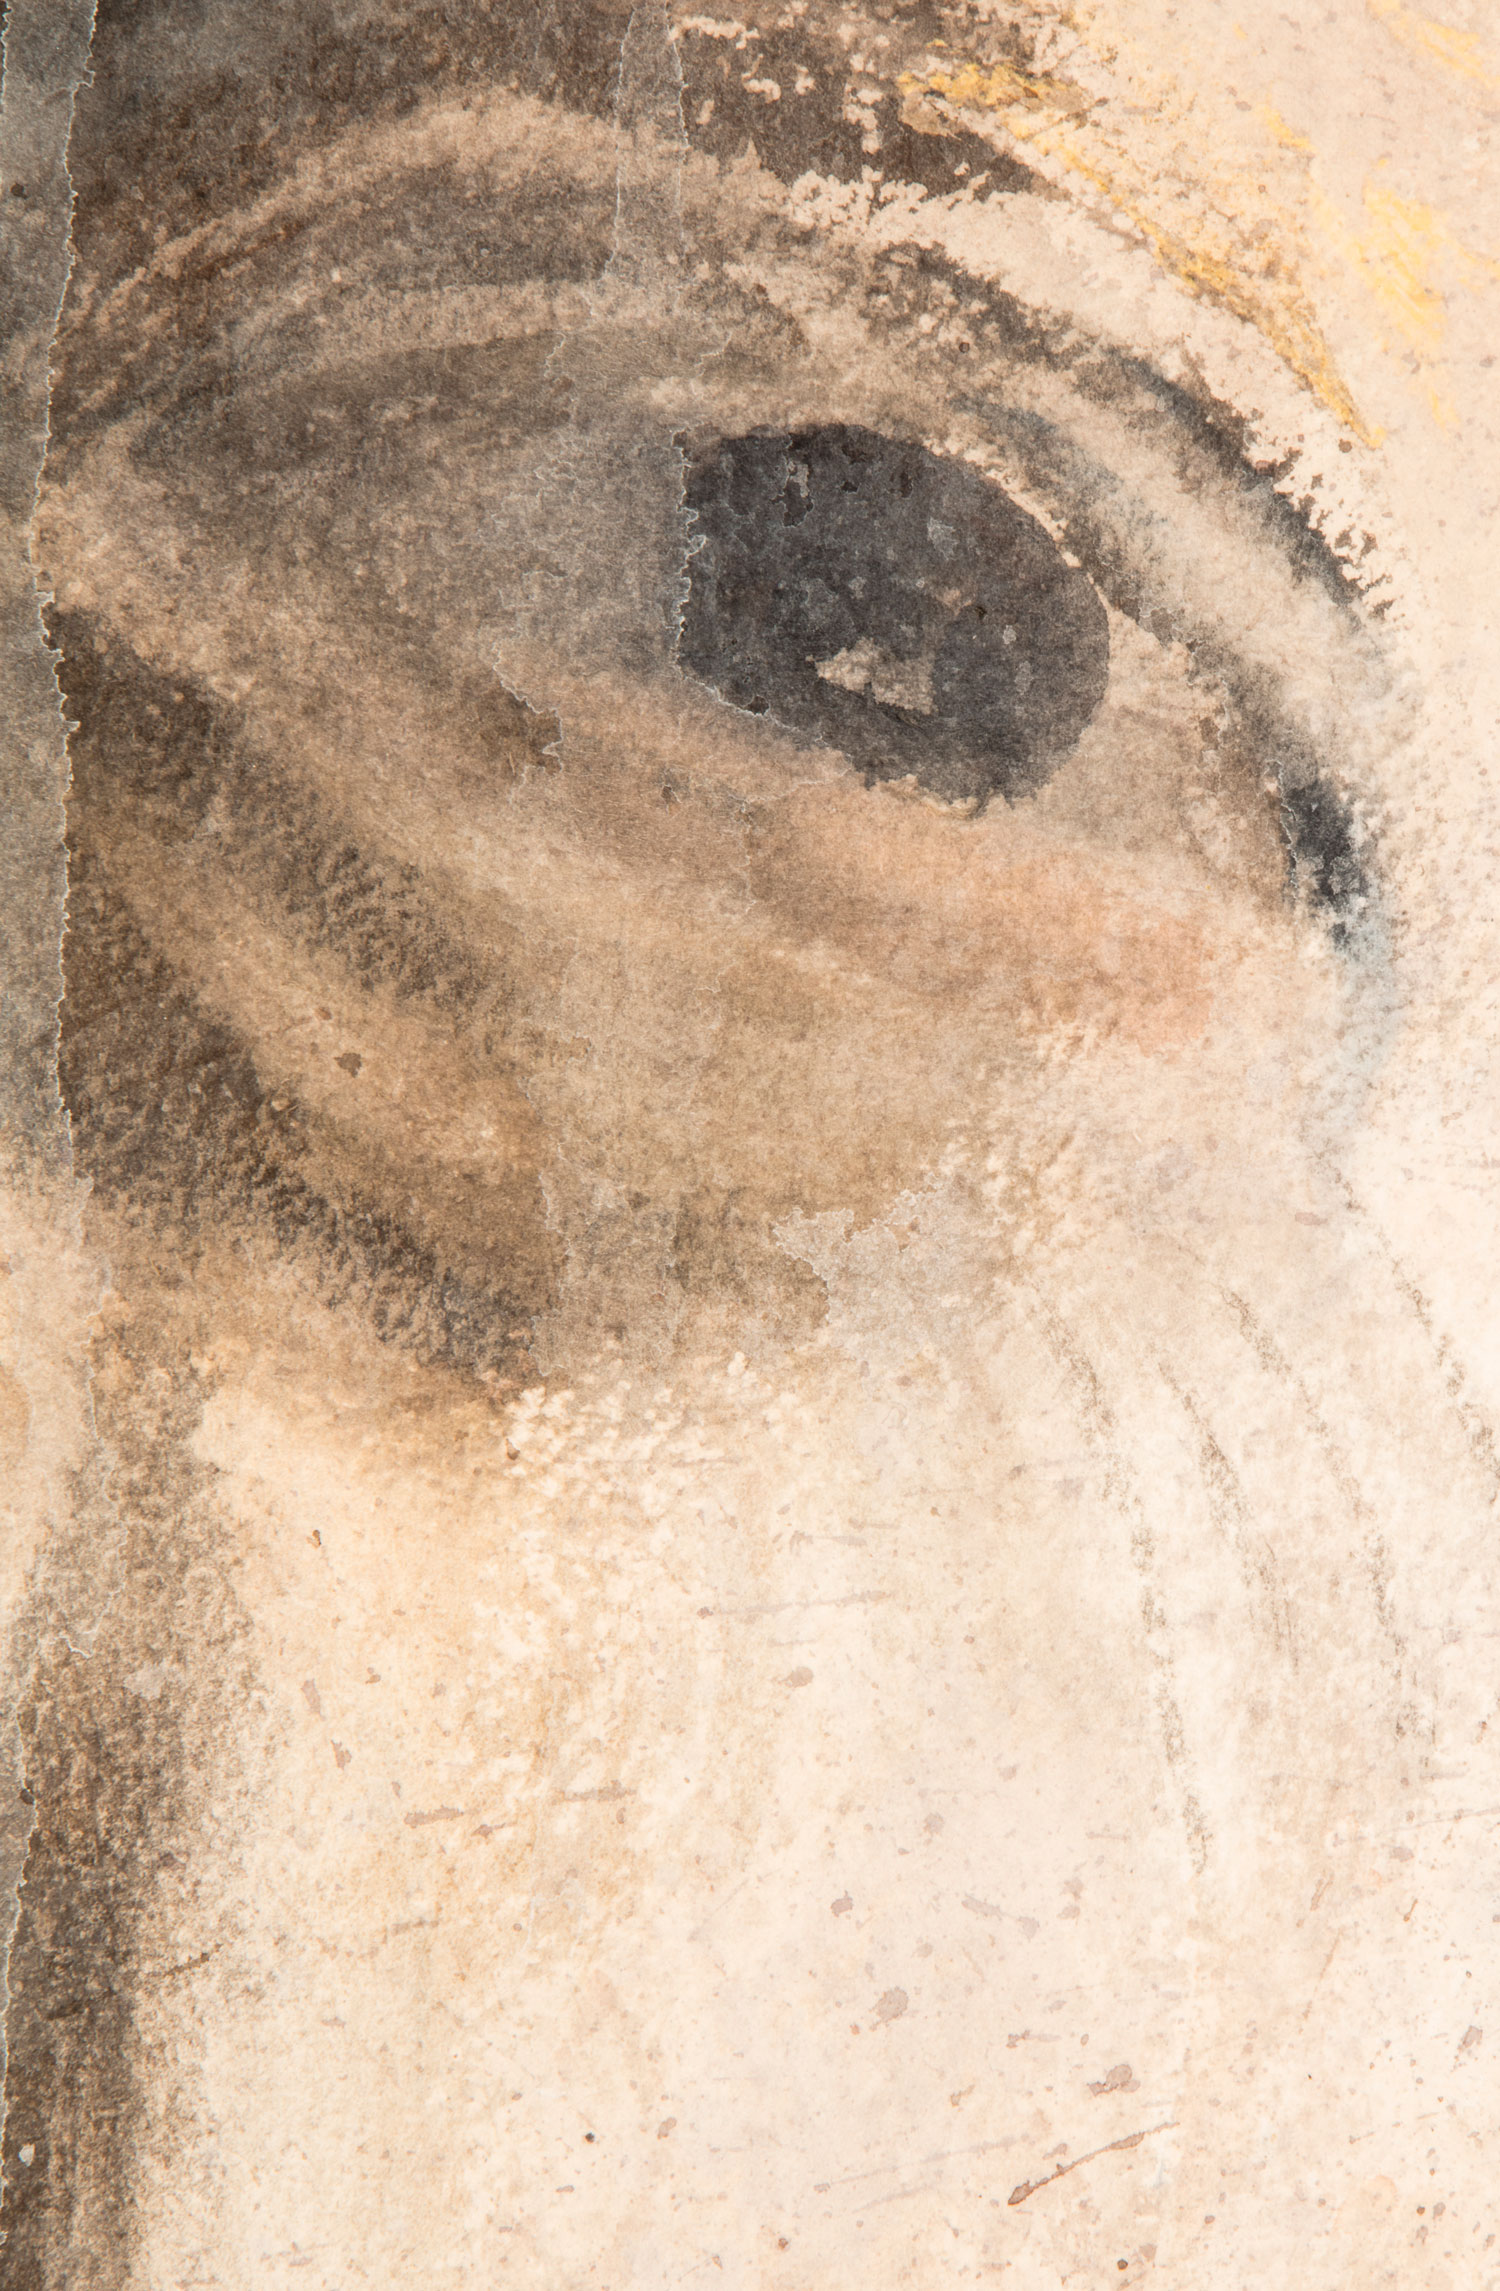 Self-portrait II - detail